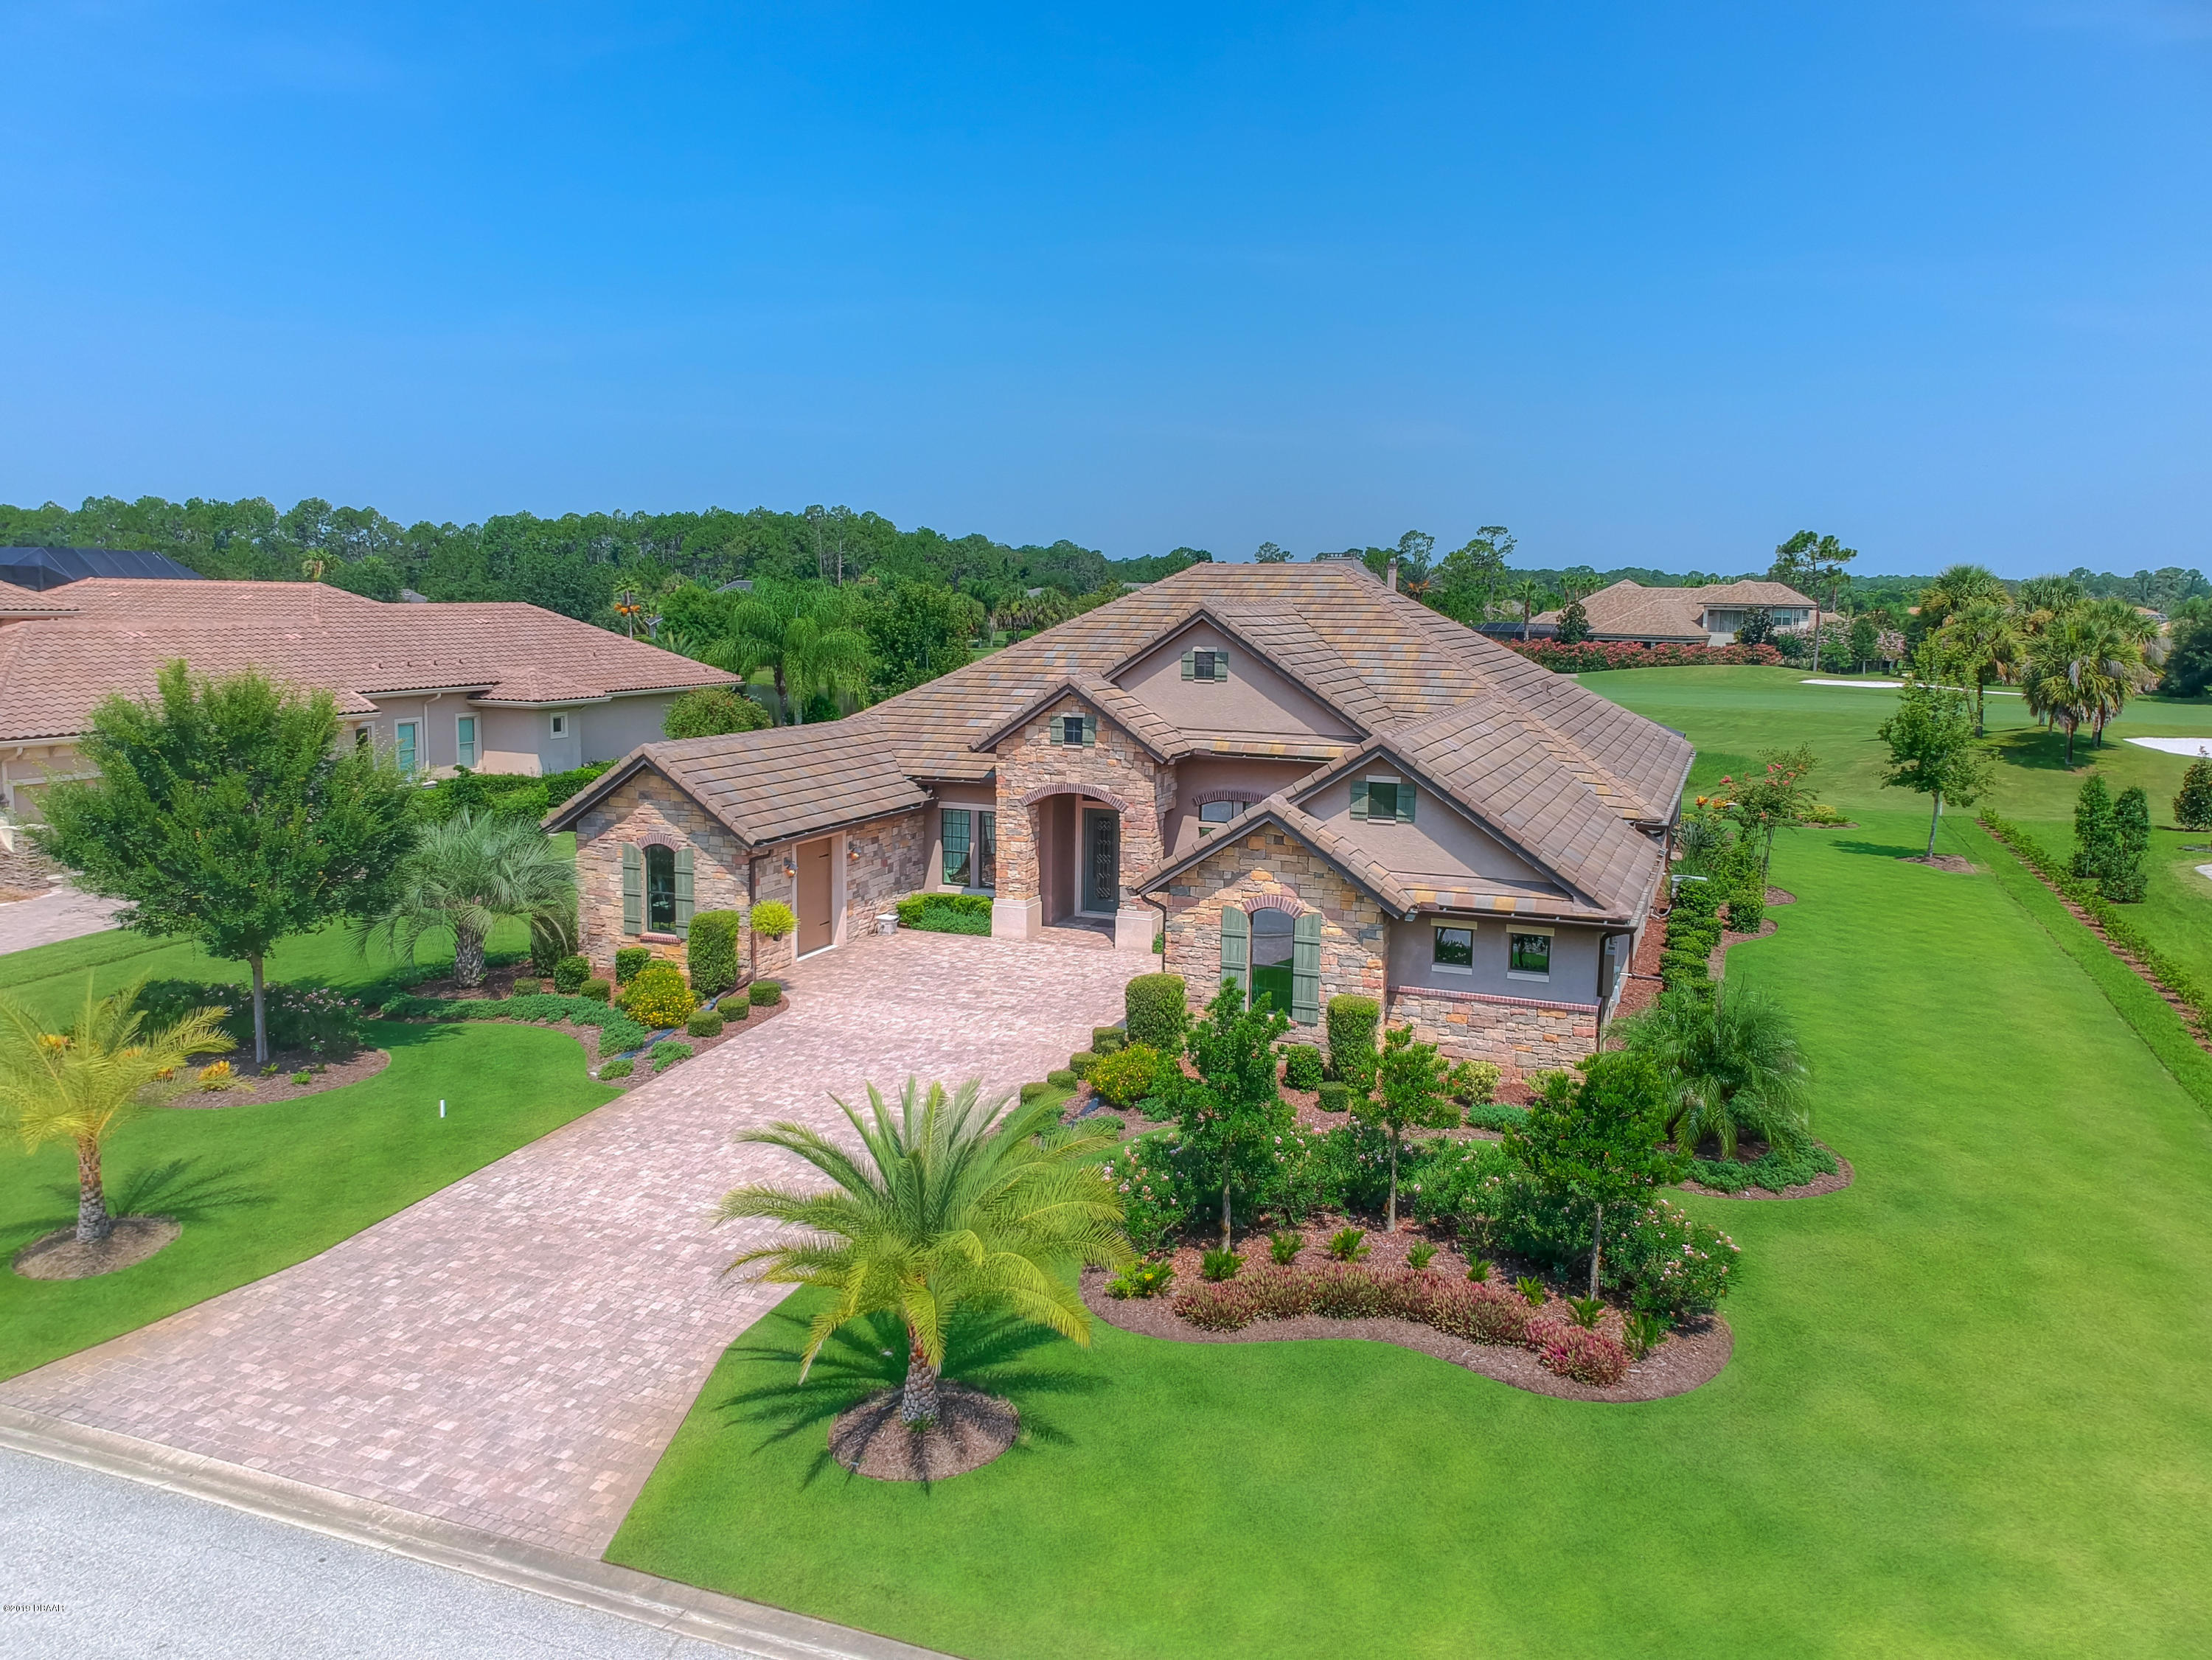 Photo of 1224 Castlehawk Lane, Ormond Beach, FL 32174